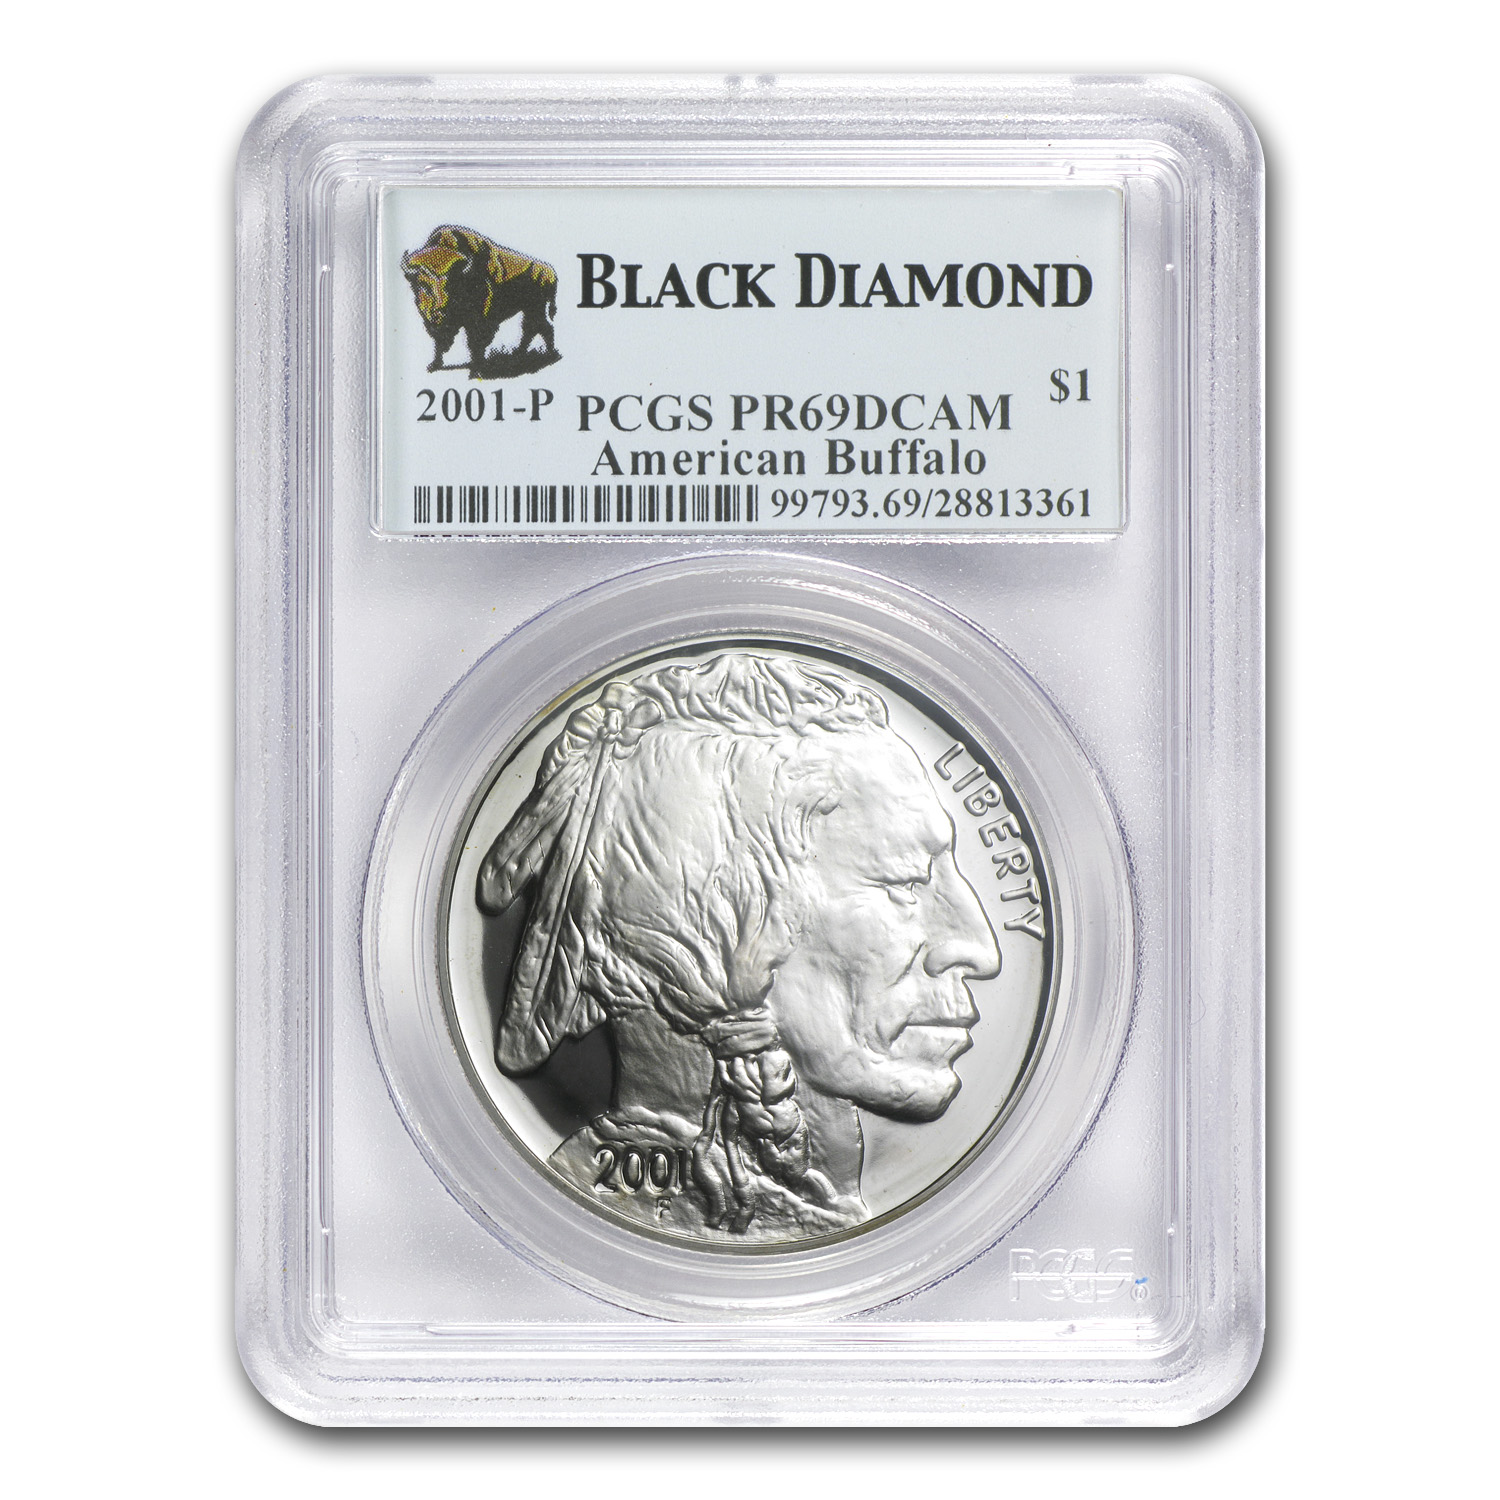 2001-P Buffalo Black Diamond $1 Silver Commem PR-69 PCGS